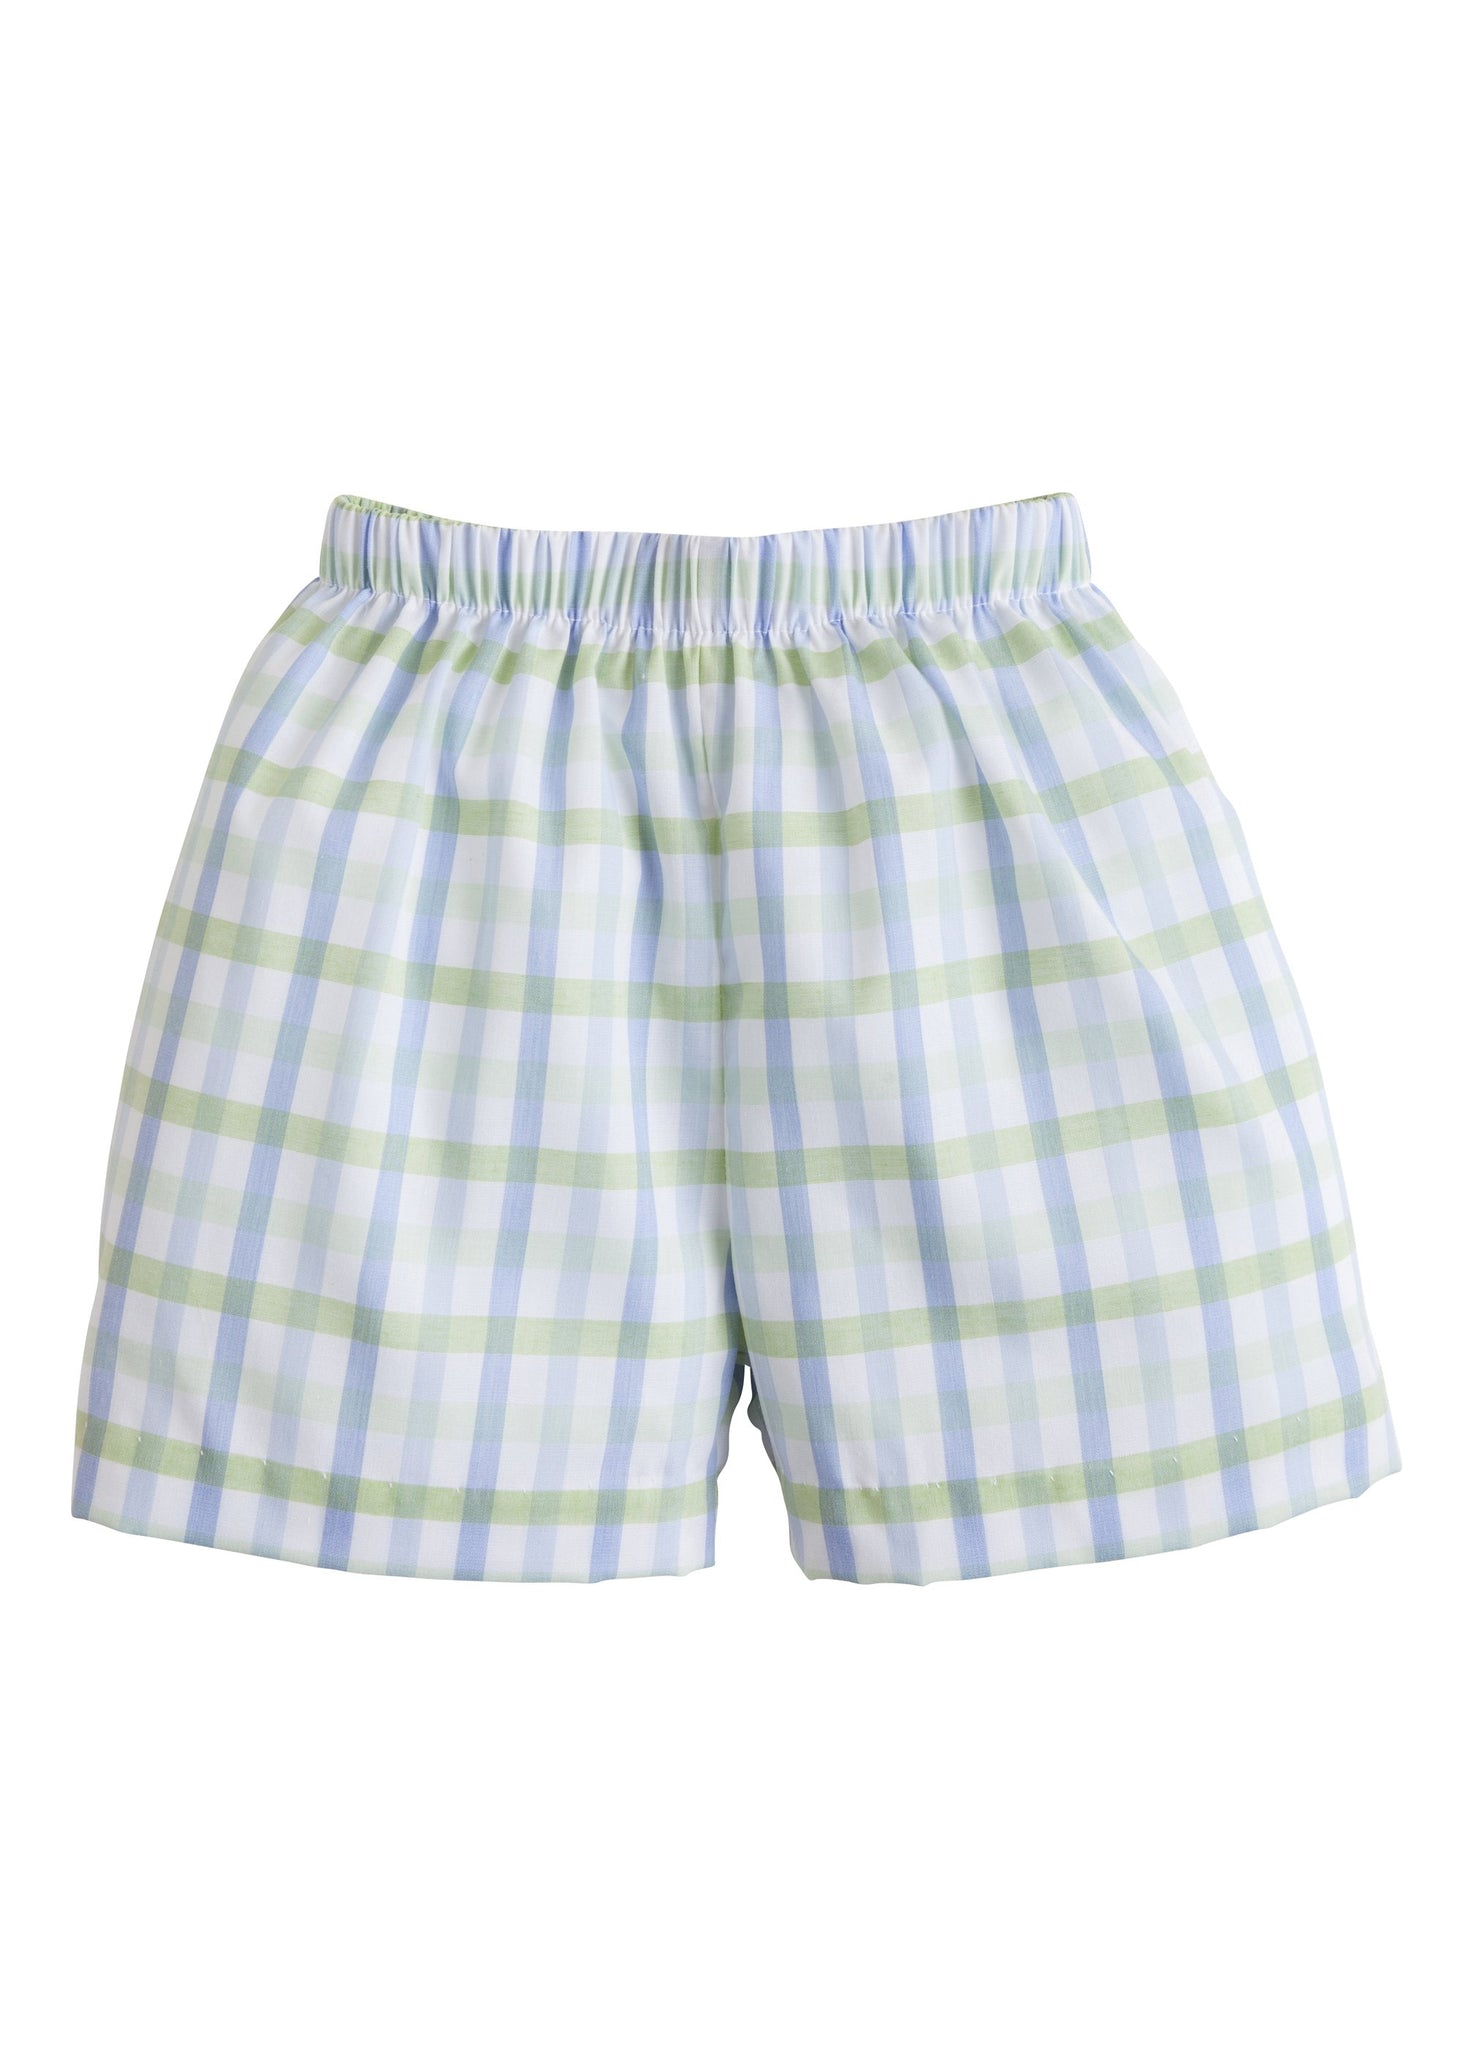 Vintage Check Shorts - Noa & Vivi Kids Apparel